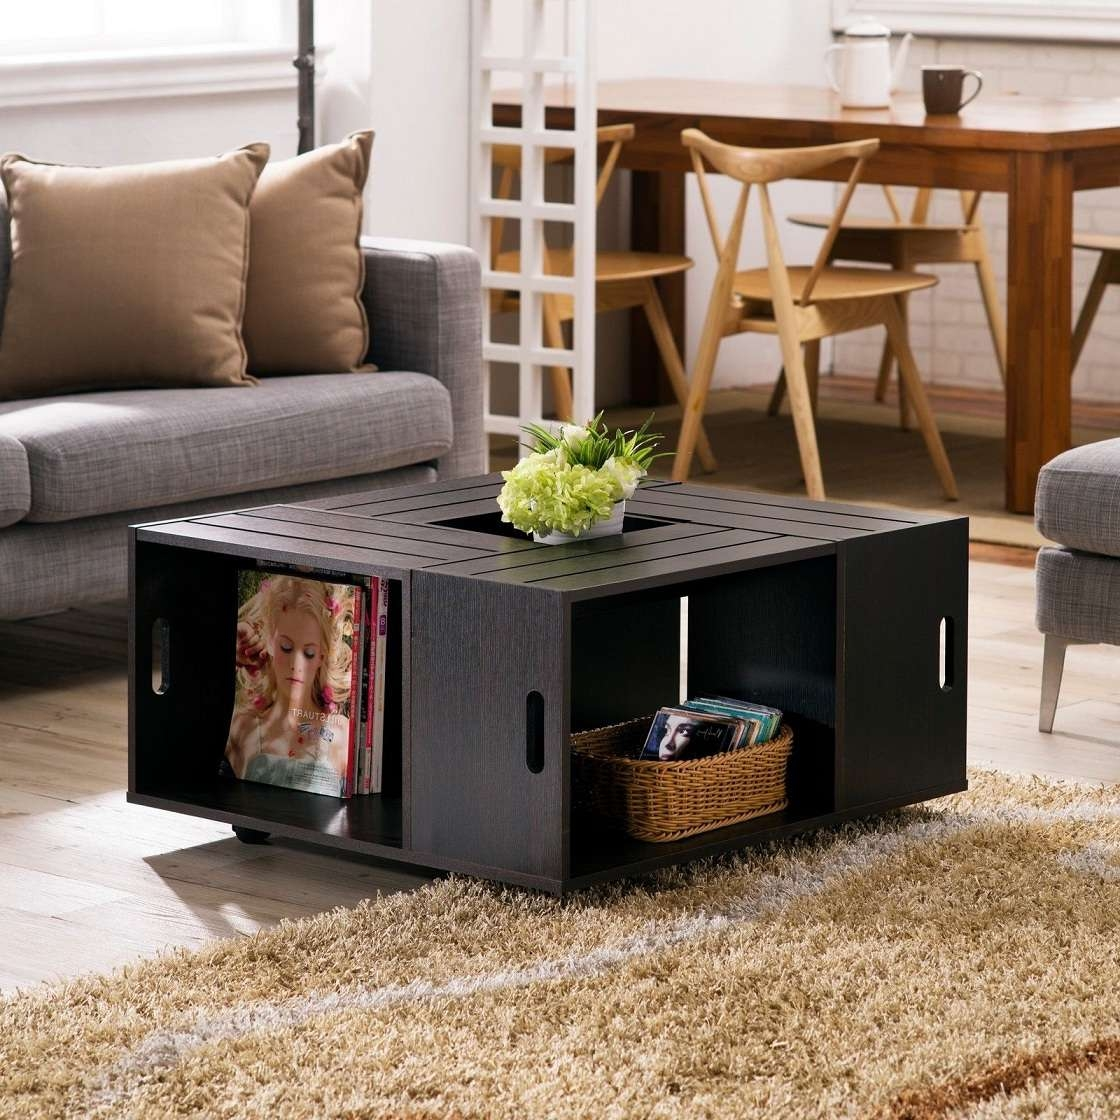 Well Liked Large Square Coffee Table With Storage Throughout Coffee Tables With Storage Drawers In Reputable Swivel Coffee (View 15 of 20)